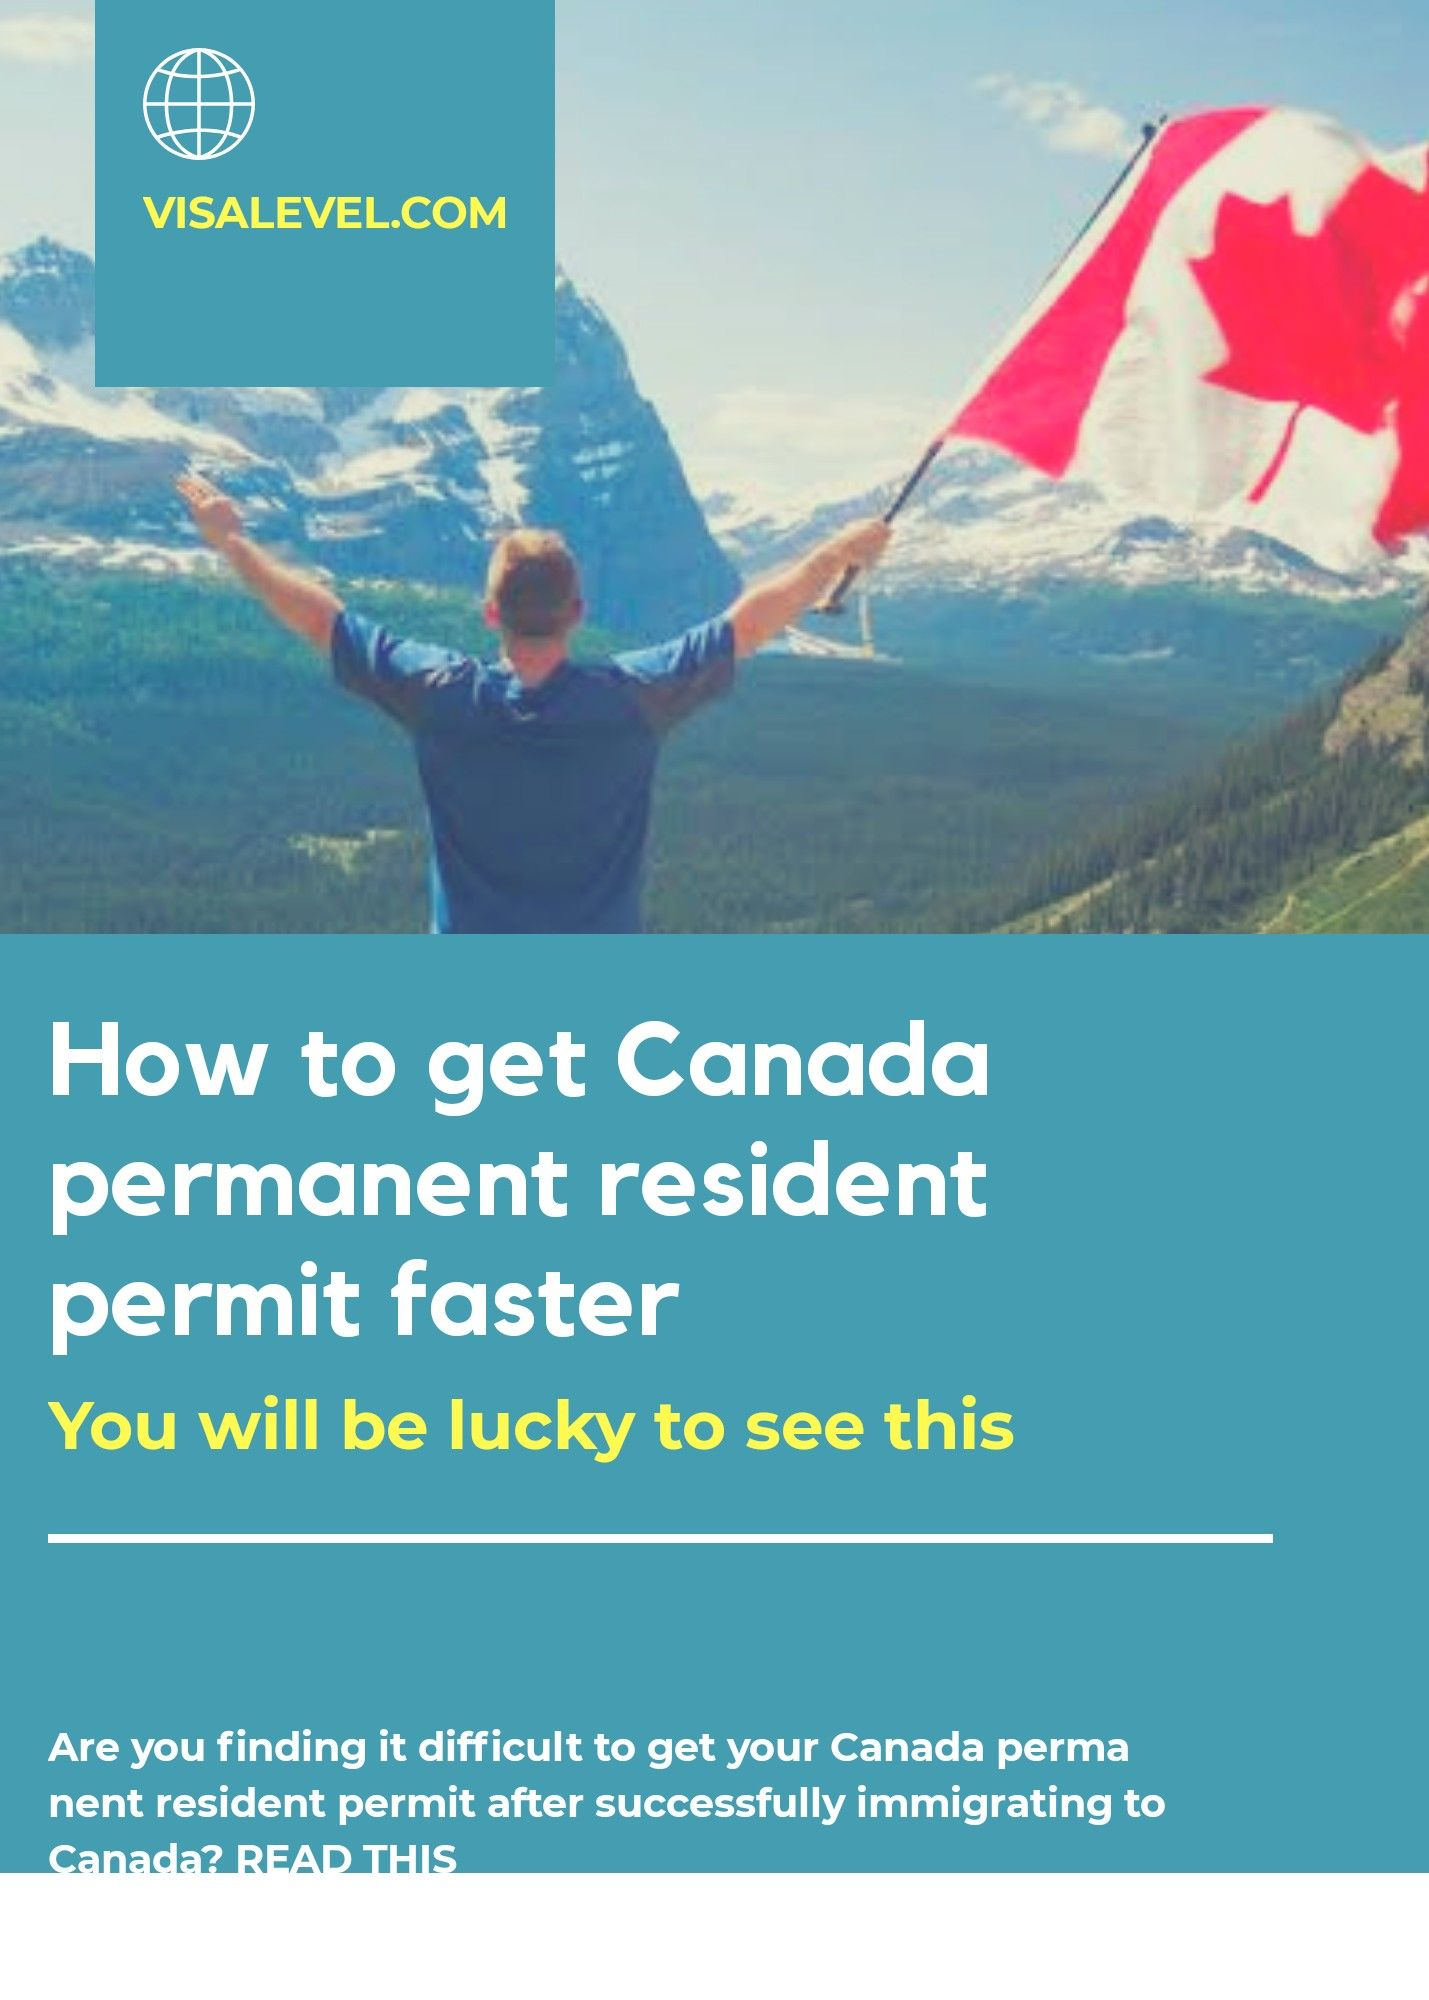 bed09b376829550d5271068443ccc688 - How Long Does It Takes To Get Canadian Citizenship